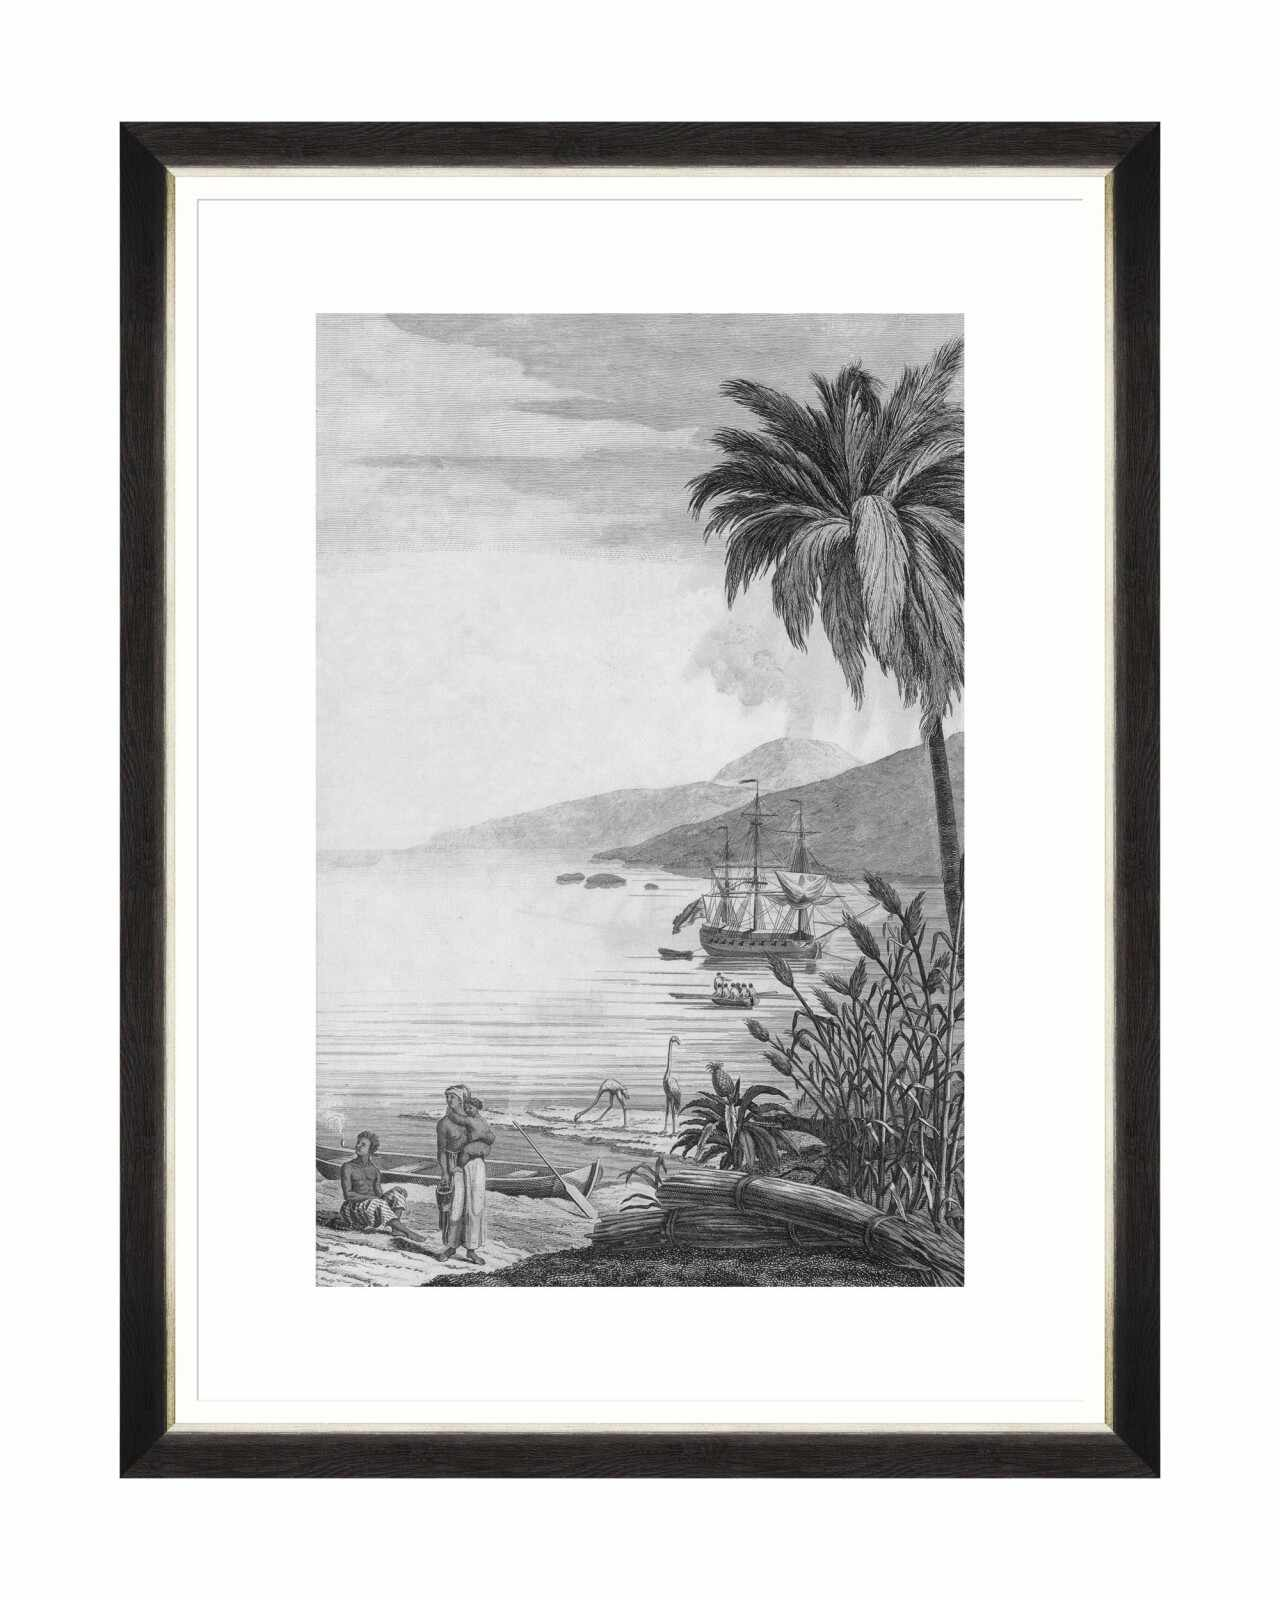 Tablou Framed Art Colonial Port II, 60 x 80 cm